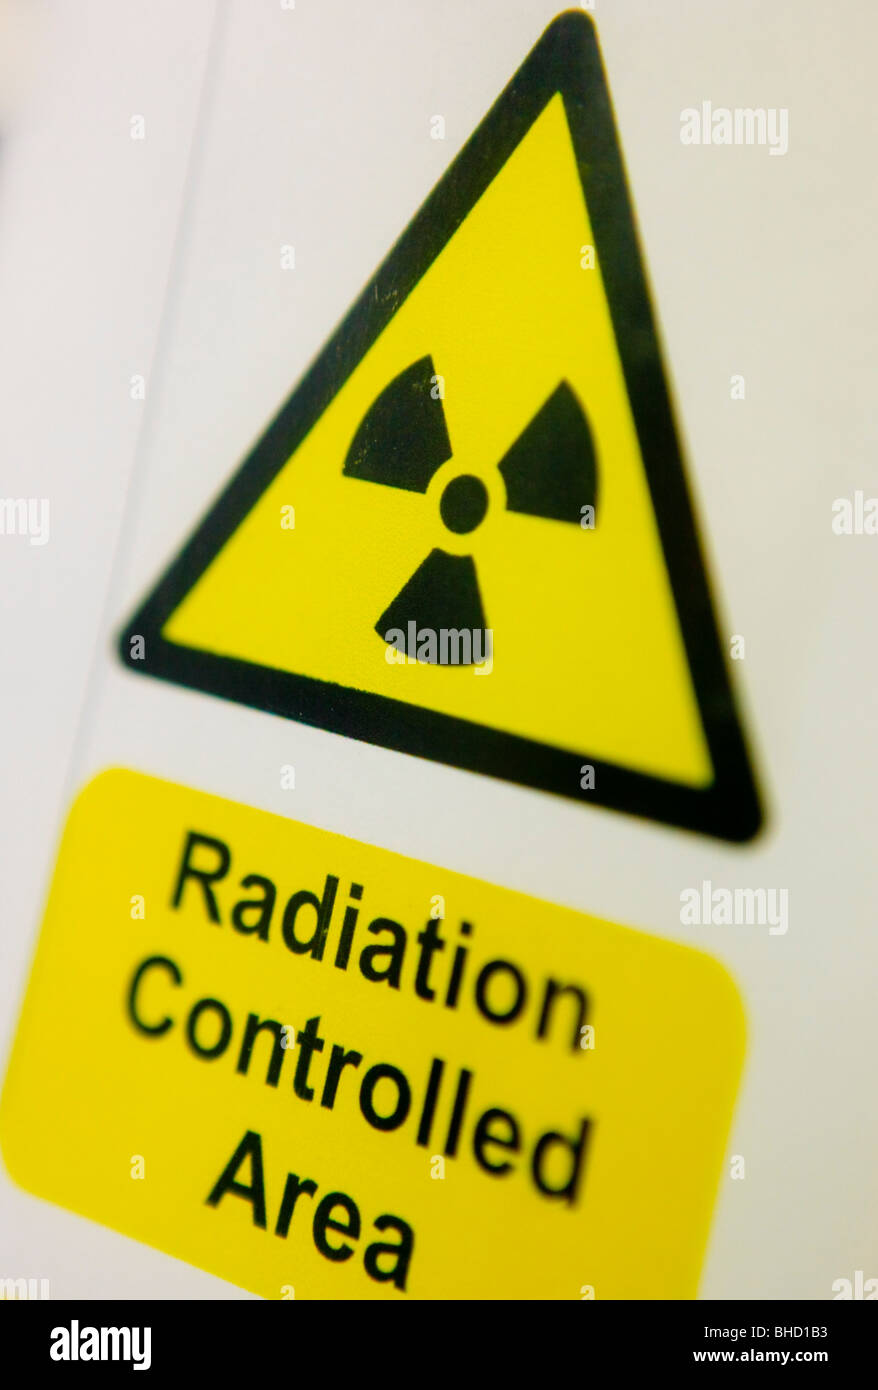 Radiation controlled area sign in an NHS hospital in Stafford. Stock Photo